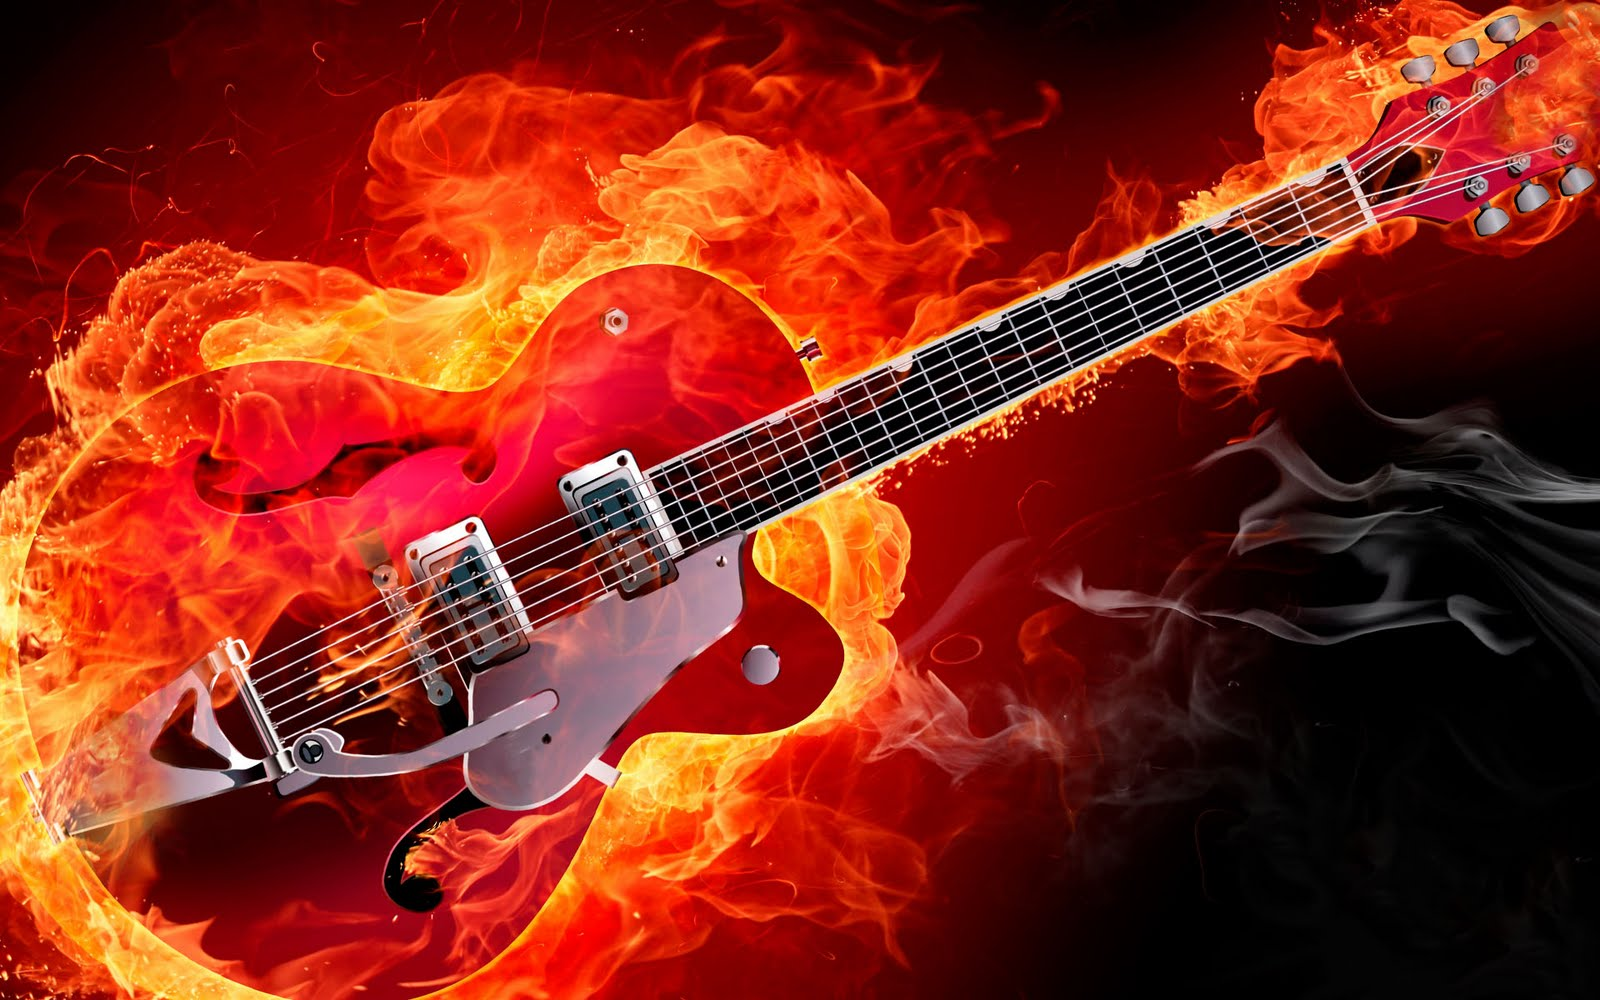 Electric Rockabilly Guitar On Fire Red Smoke Flames HD Music Desktop Wallpaper 1920x1200 Great Sound GreatGuitarSound